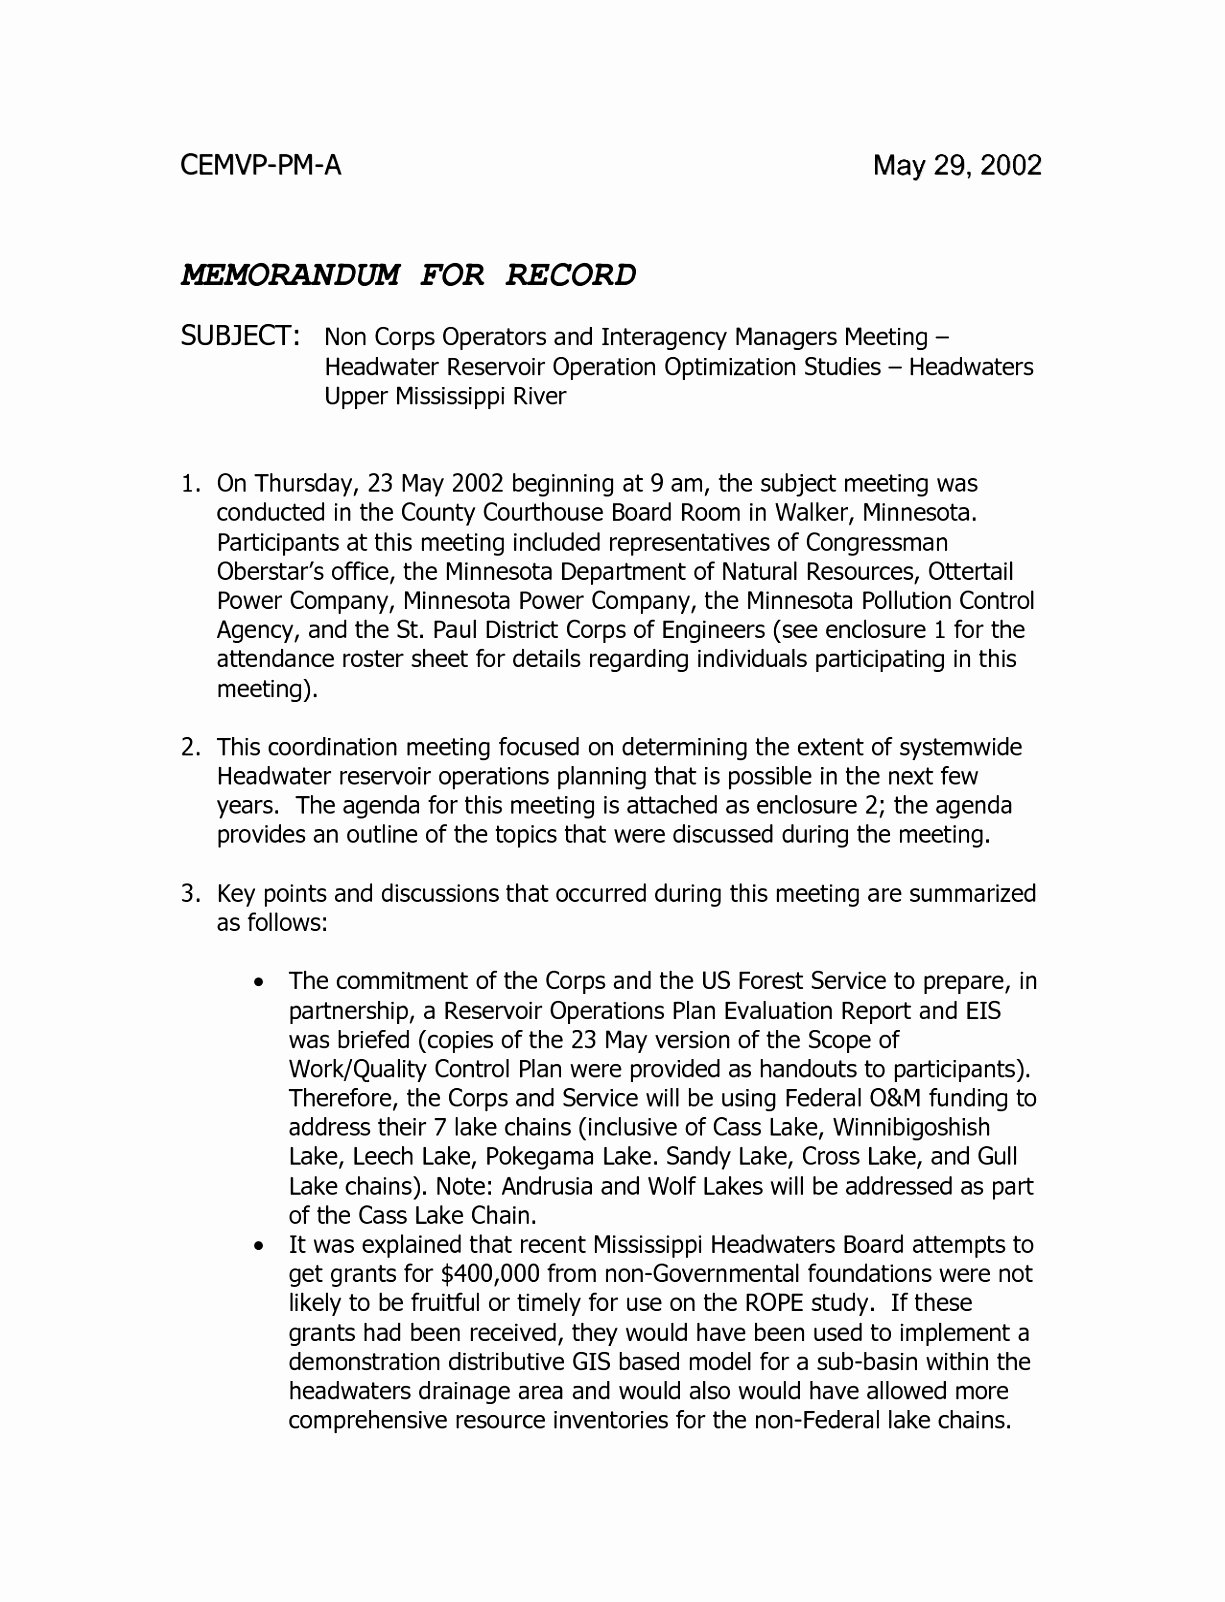 Memo for Record Template Beautiful 7 Army Memorandum for Record Template Word Awruy